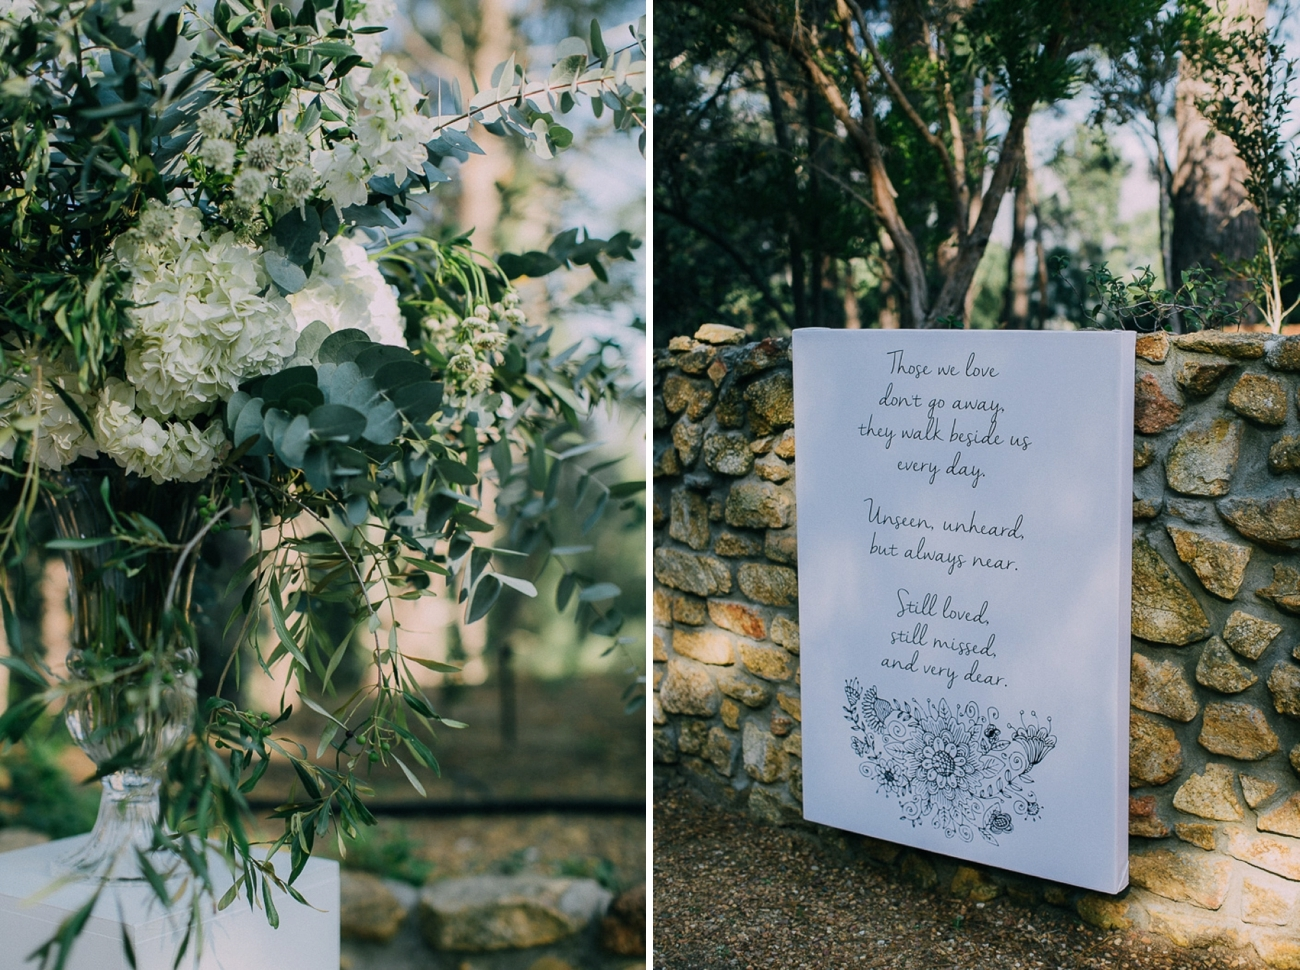 Sign Honouring Loved Ones | Credit: Michelle du Toit